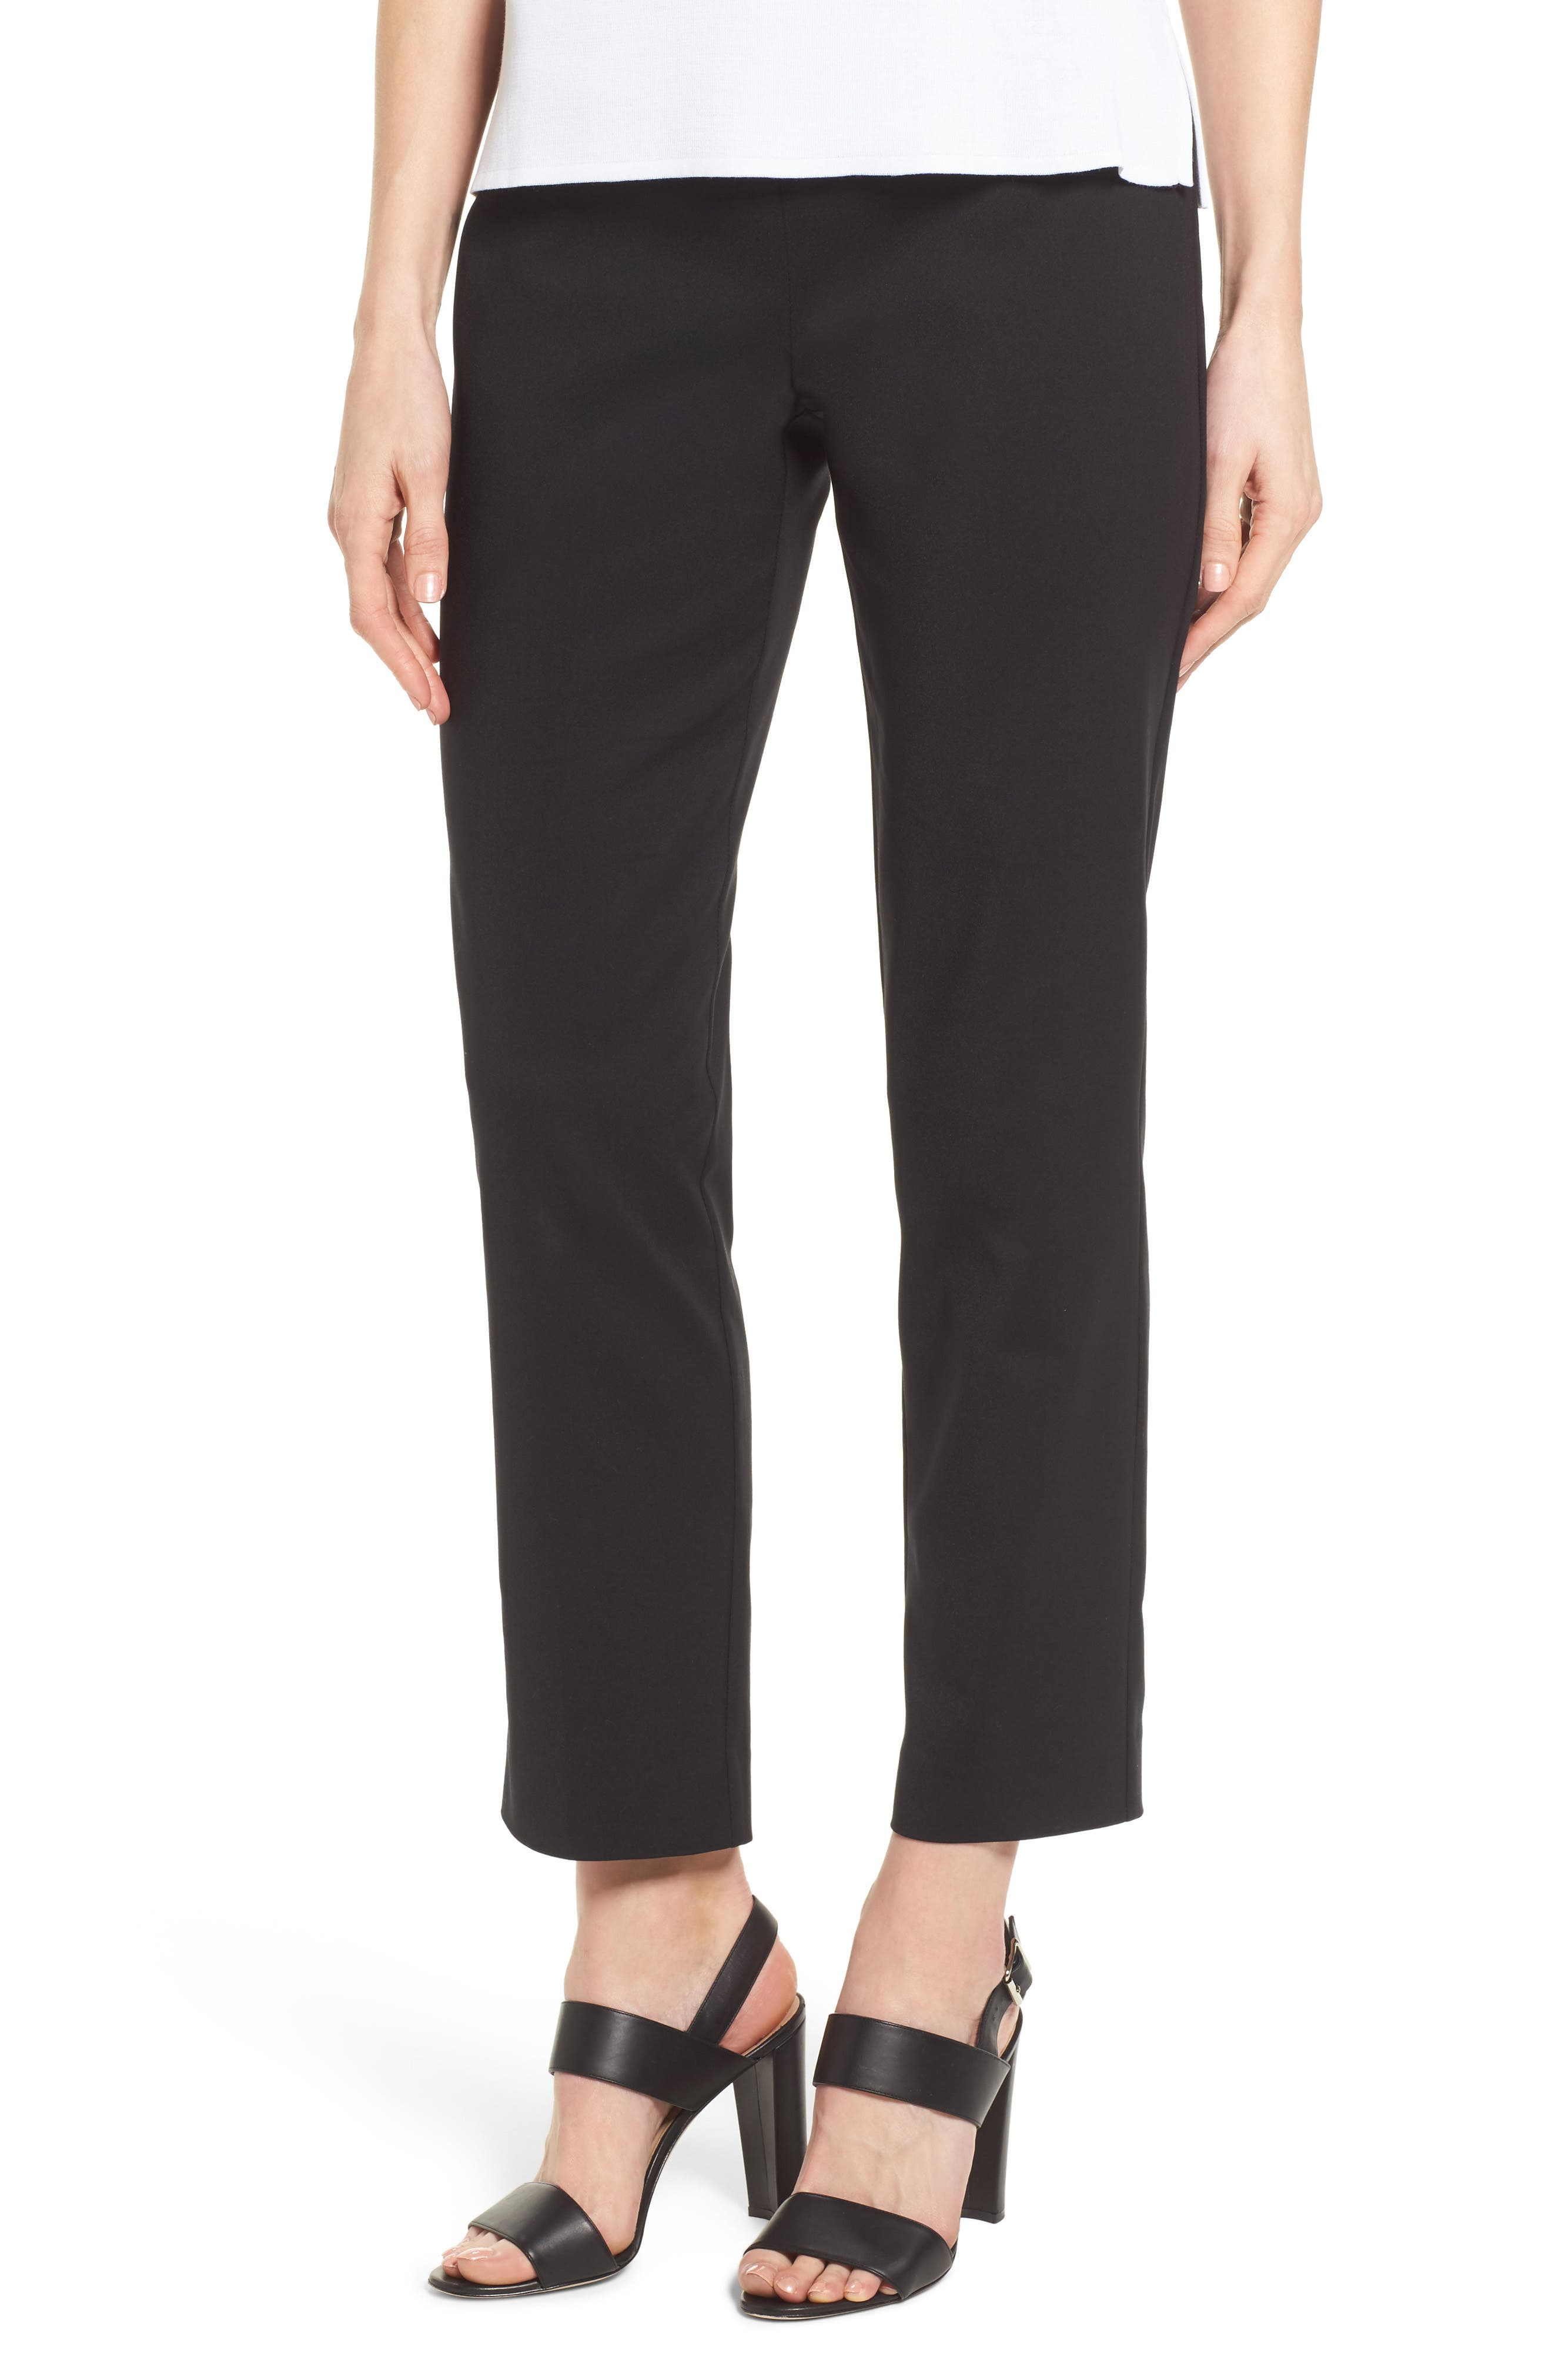 Ming Want Pull-On Ankle Pants,                         Main,                         color,